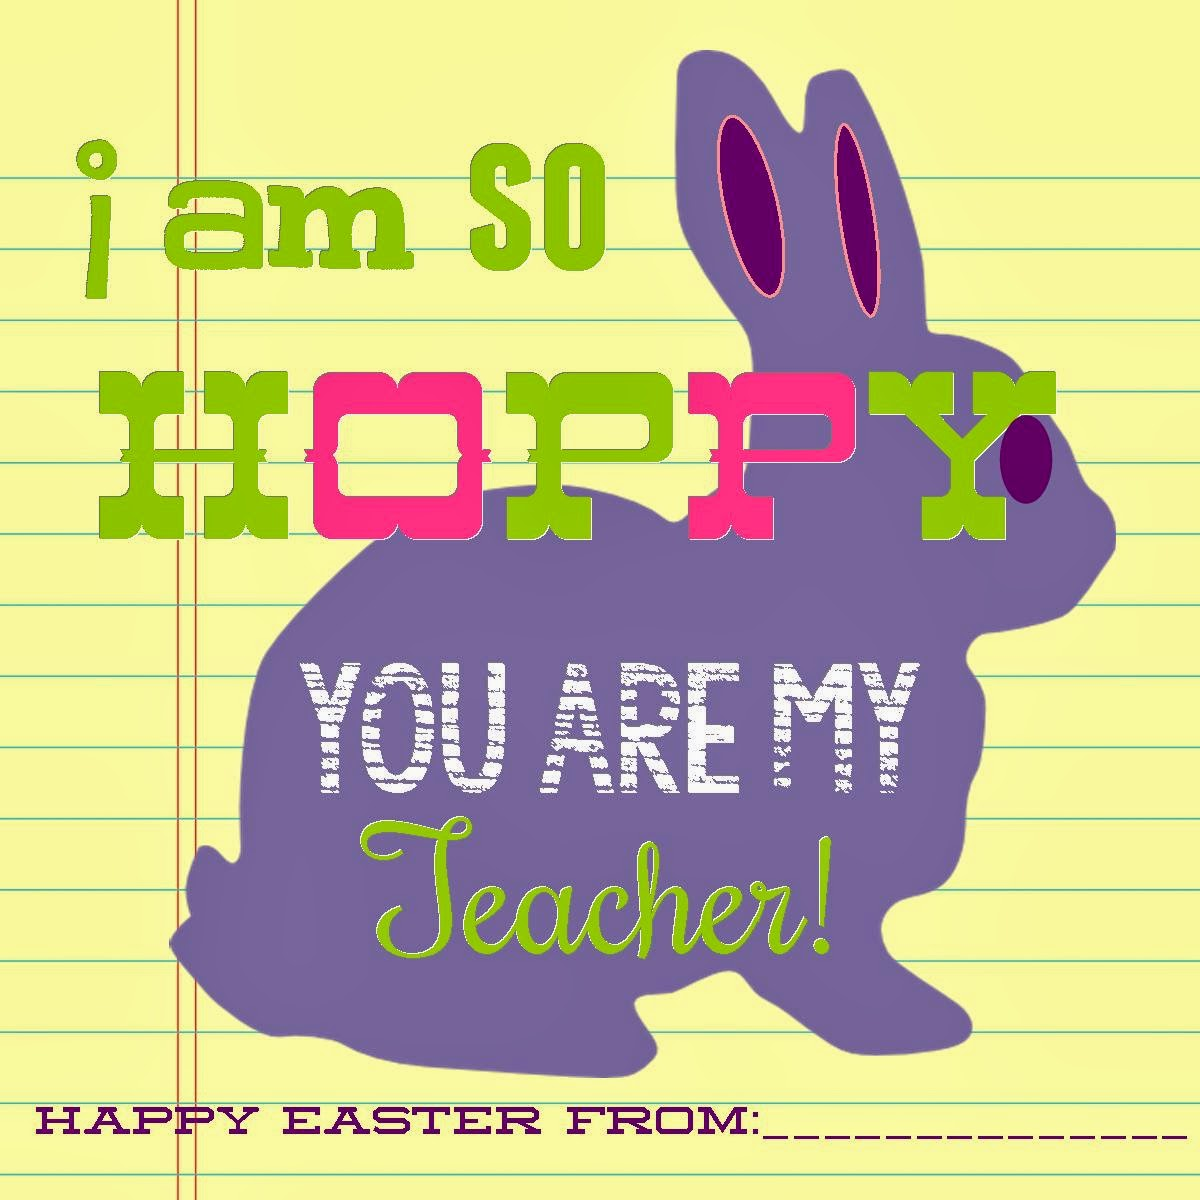 So hoppy teacher gift idea free printable negle Images